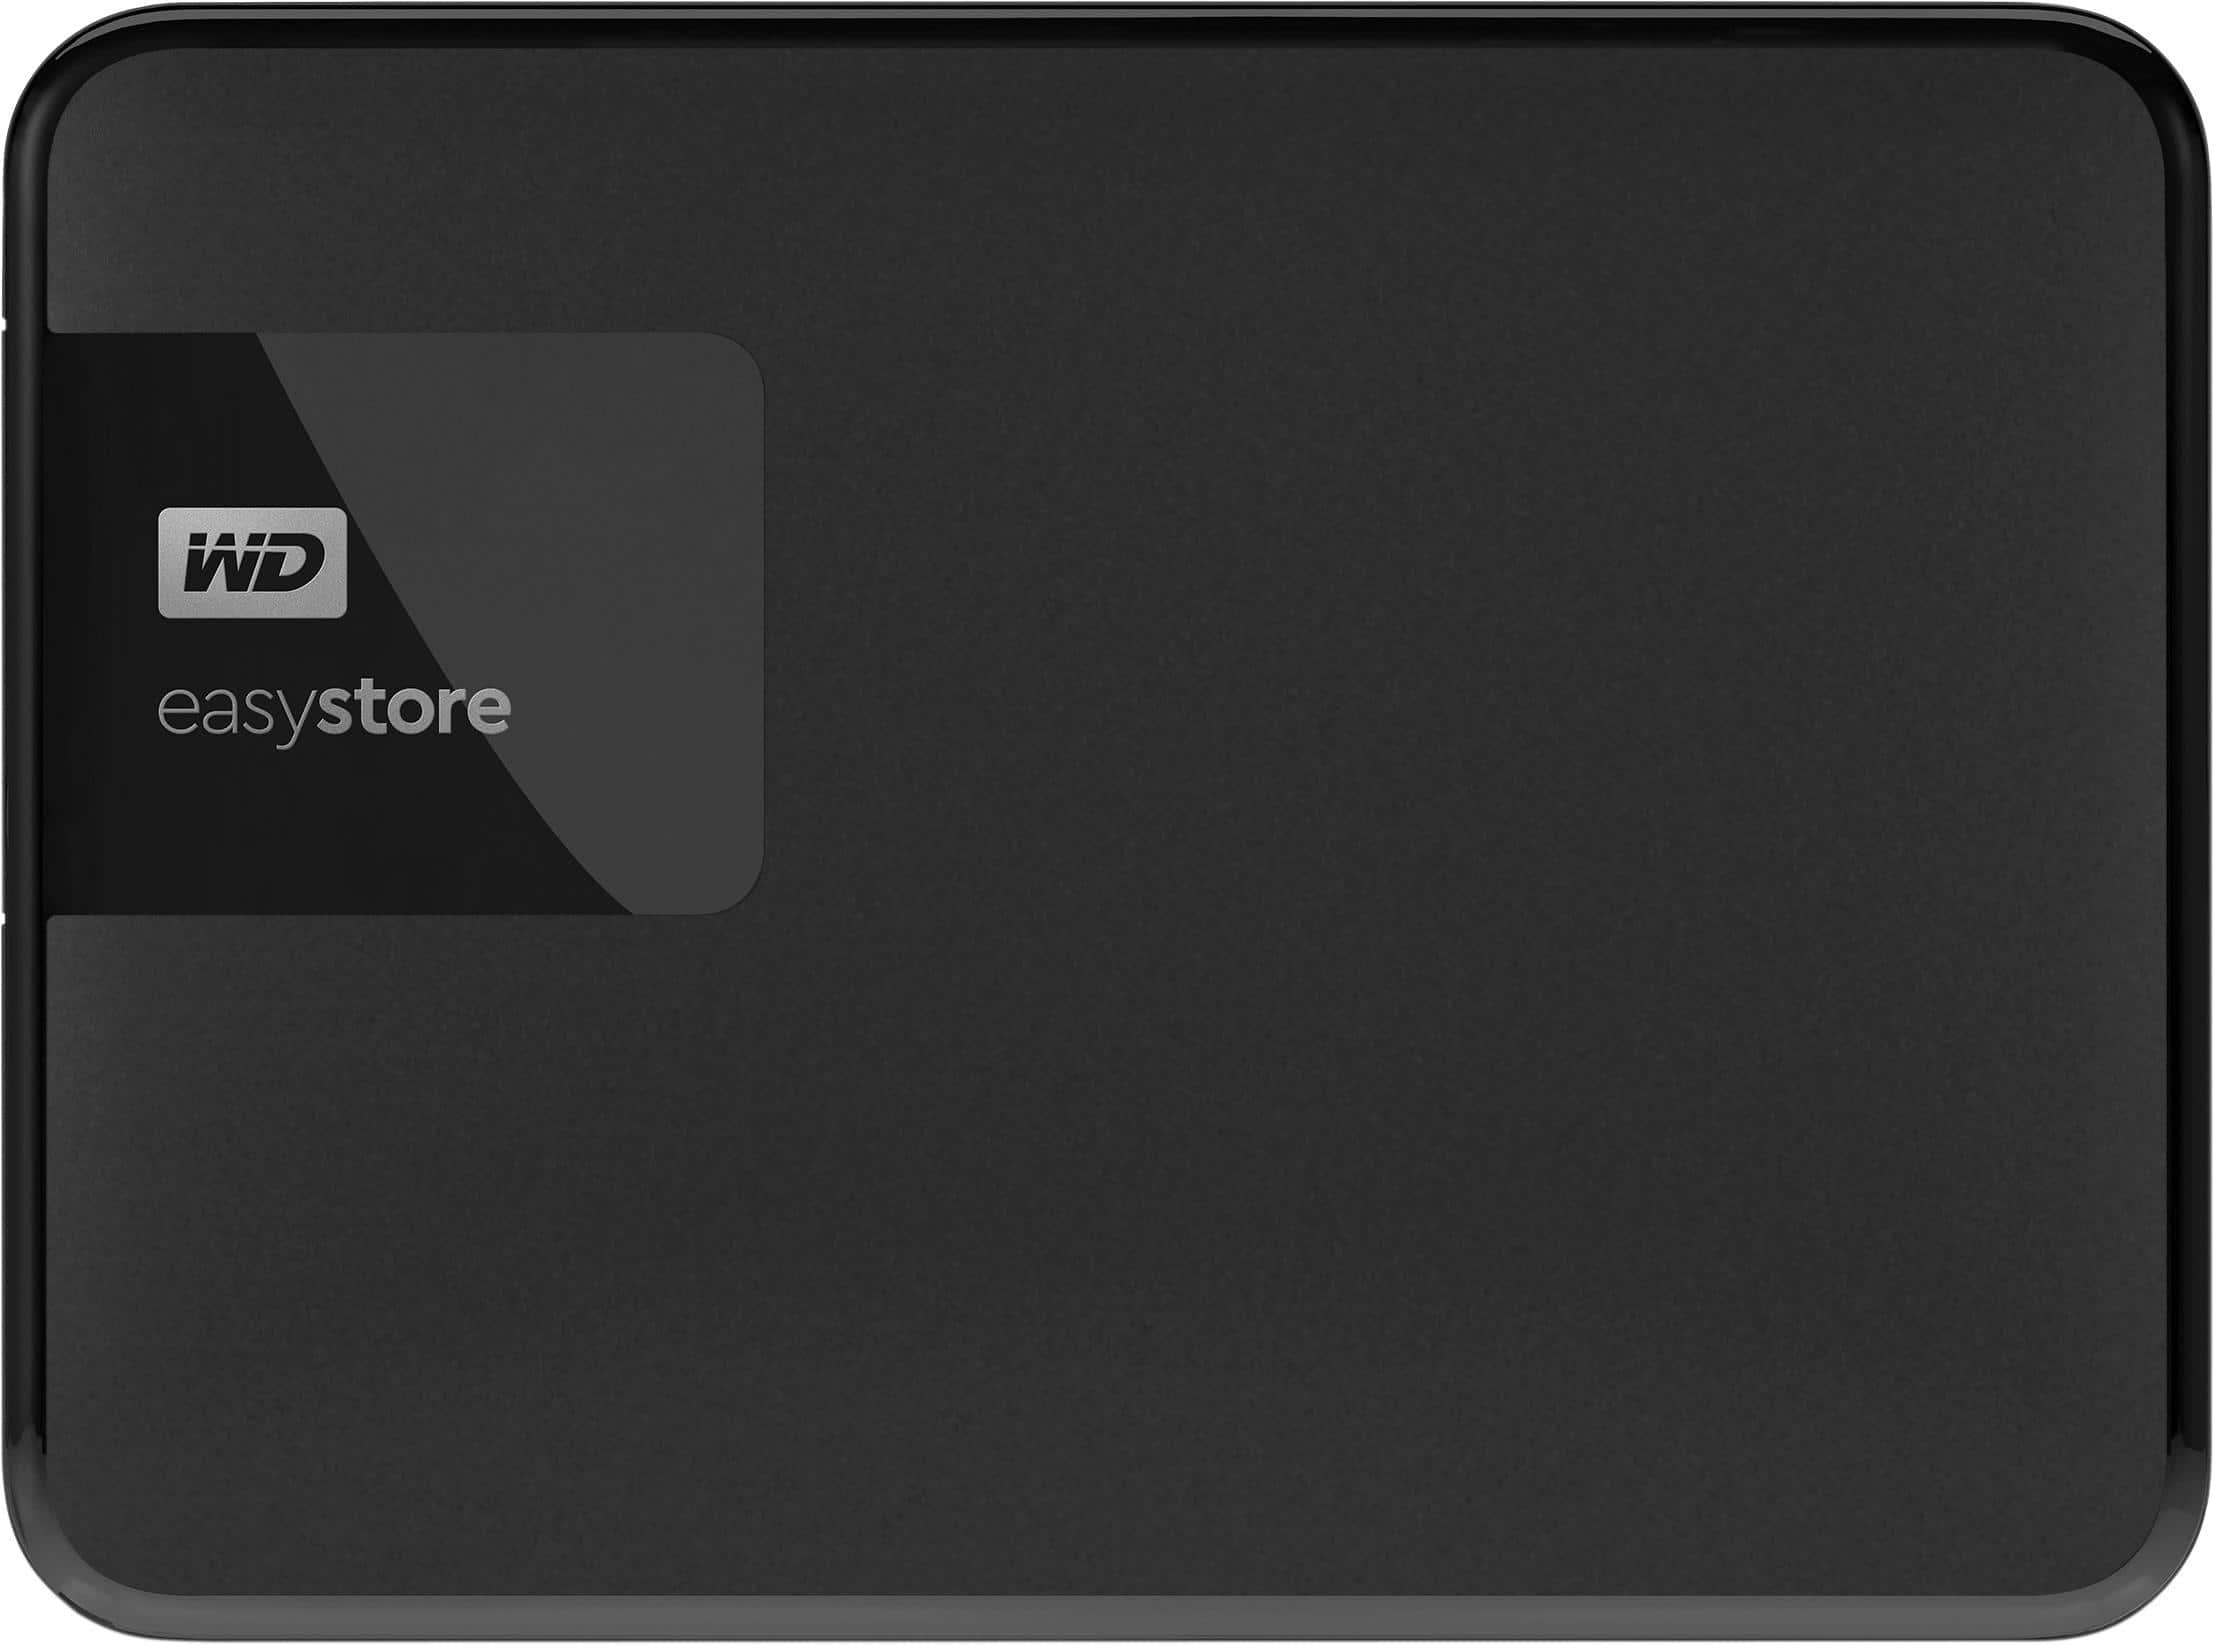 WD - easystore® 4TB External USB 3.0 Portable Hard Drive - Black $99.99